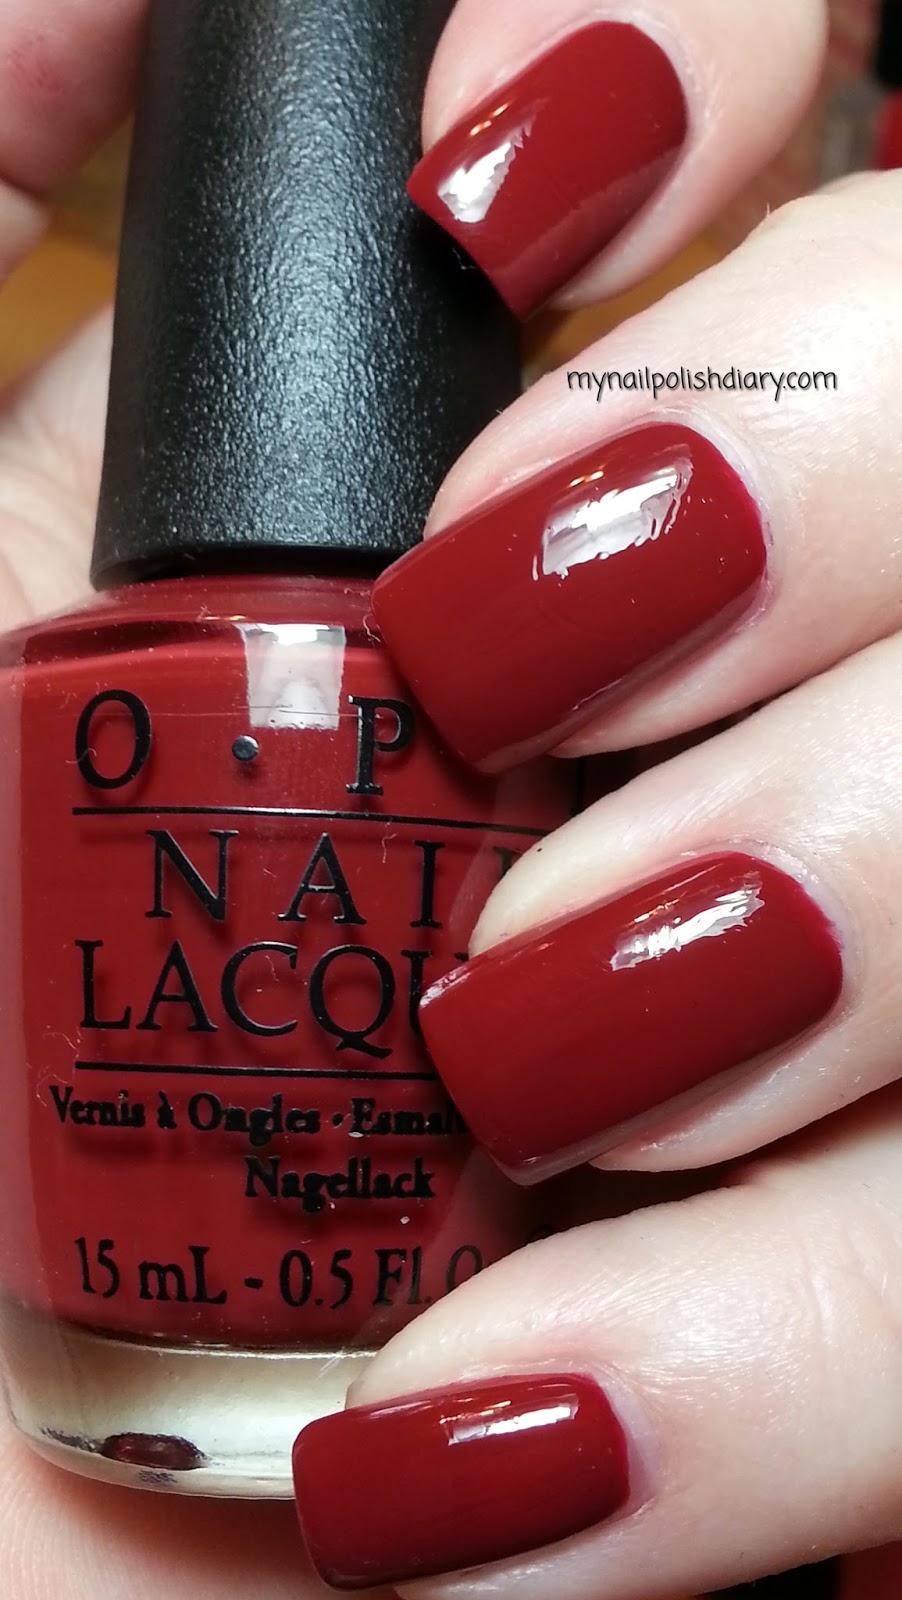 my nail polish diary: opi lost on lombard